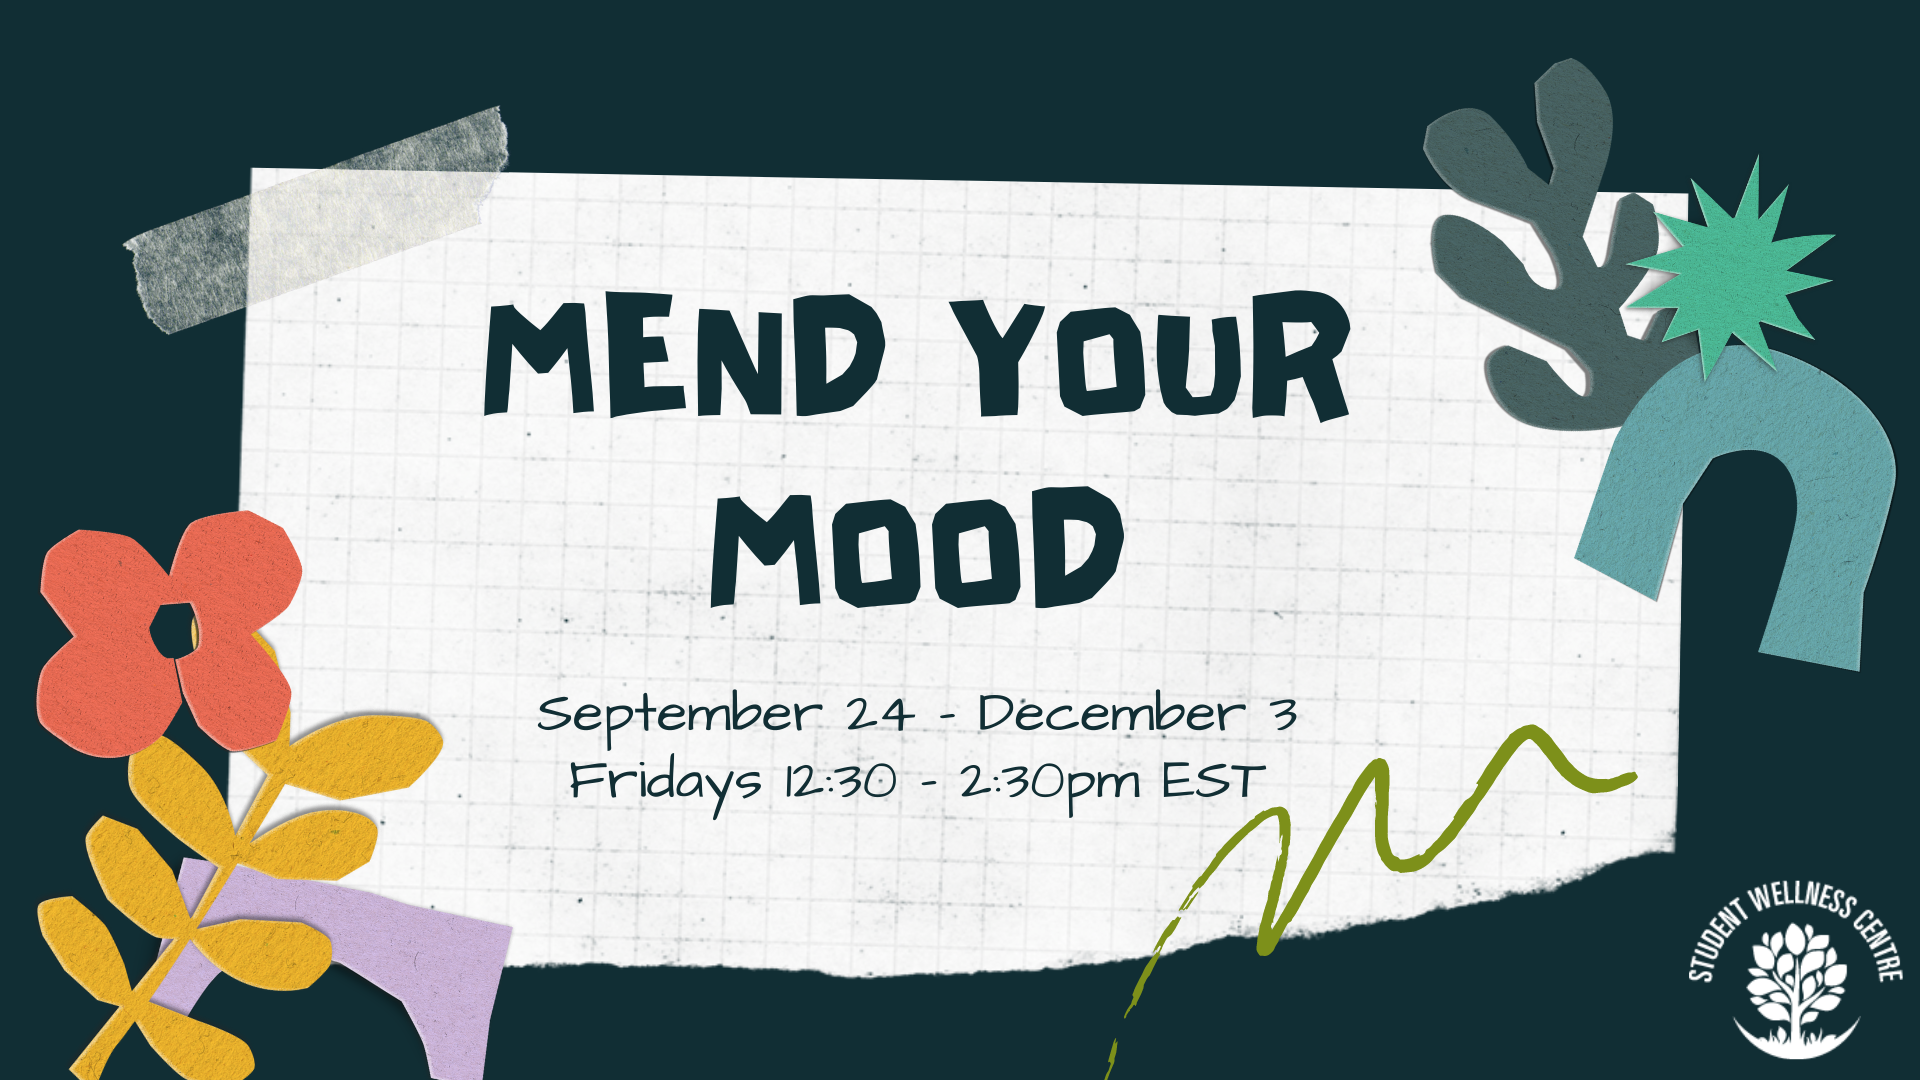 Mend Your Mood